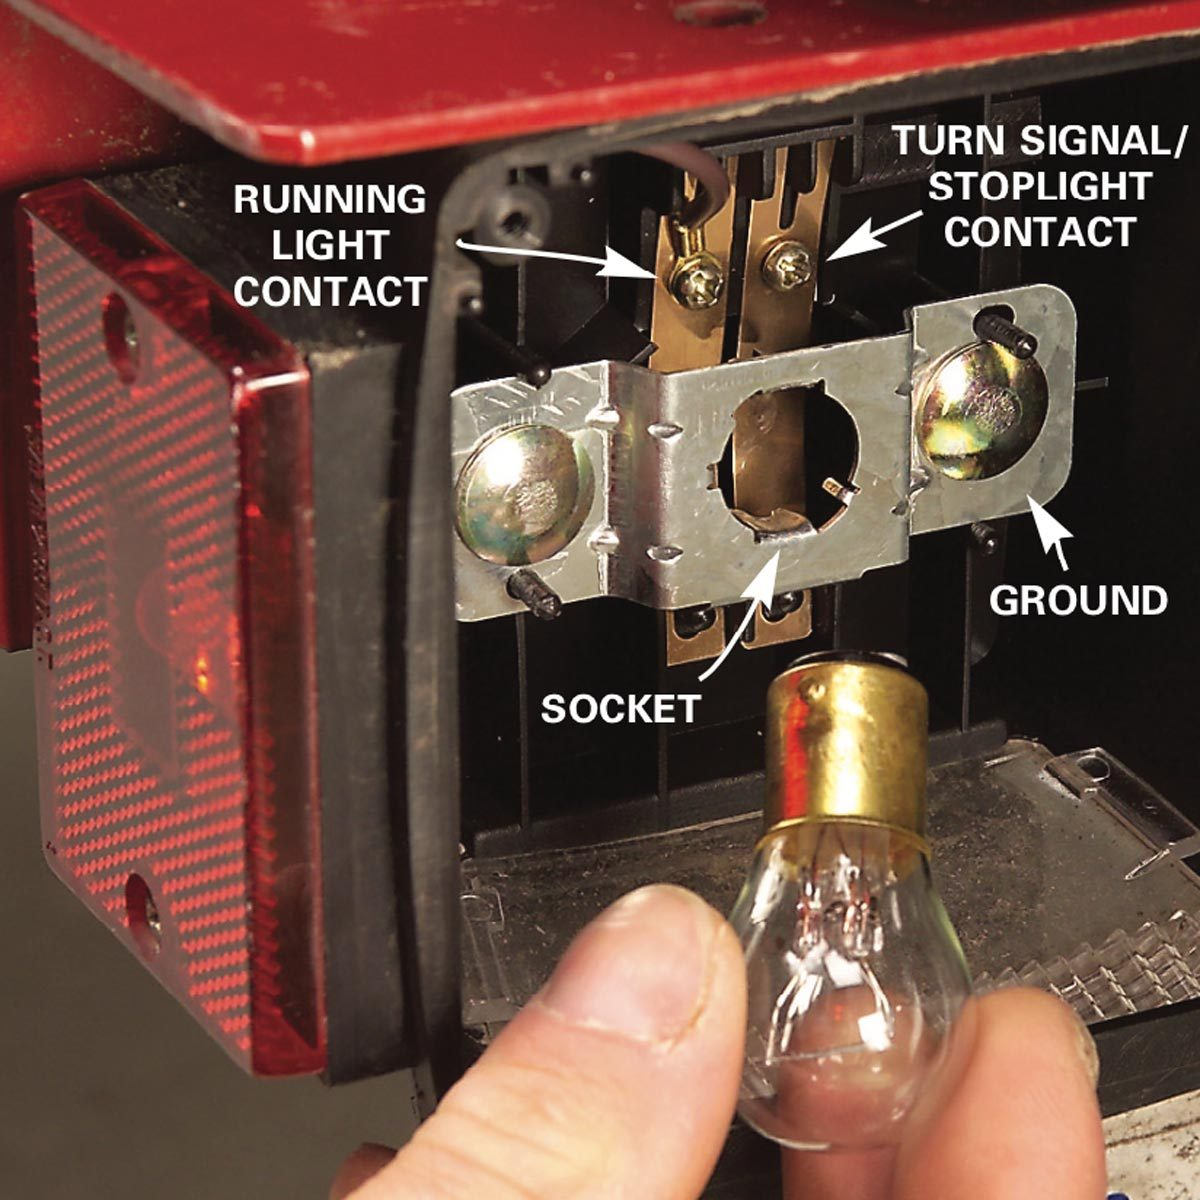 homemade trailer light tester wiring diagram lights out  here s 9 trailer wiring fixes family handyman  lights out  here s 9 trailer wiring